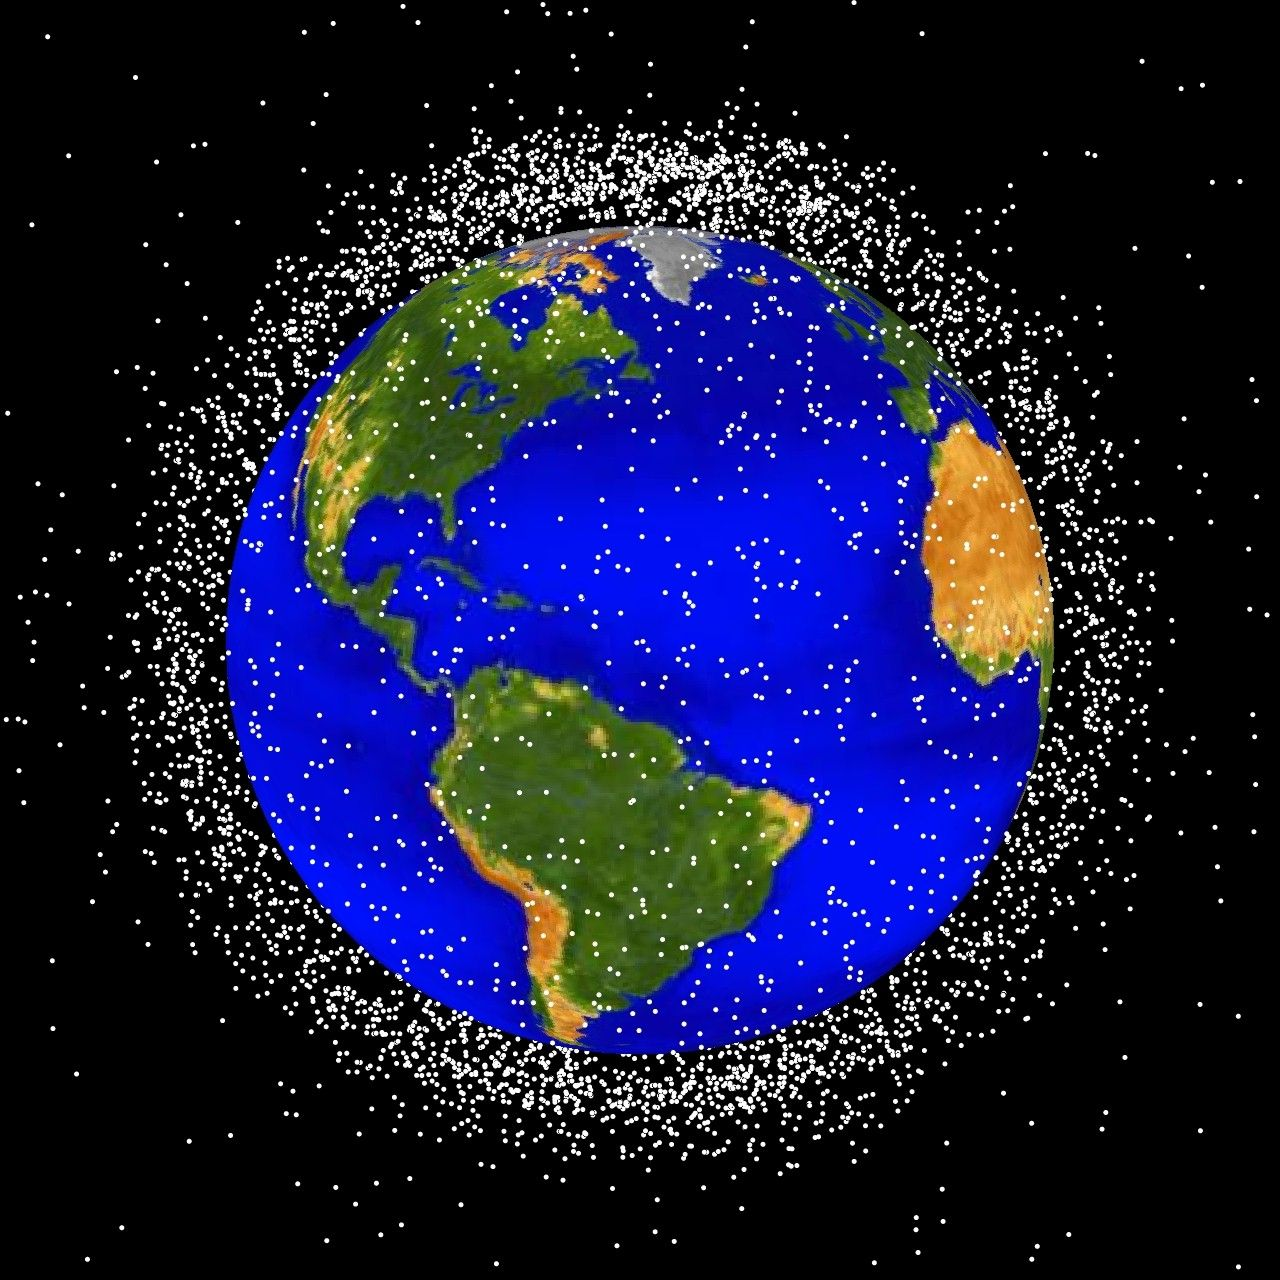 Tiny license plates could help us steer clear of our space junk